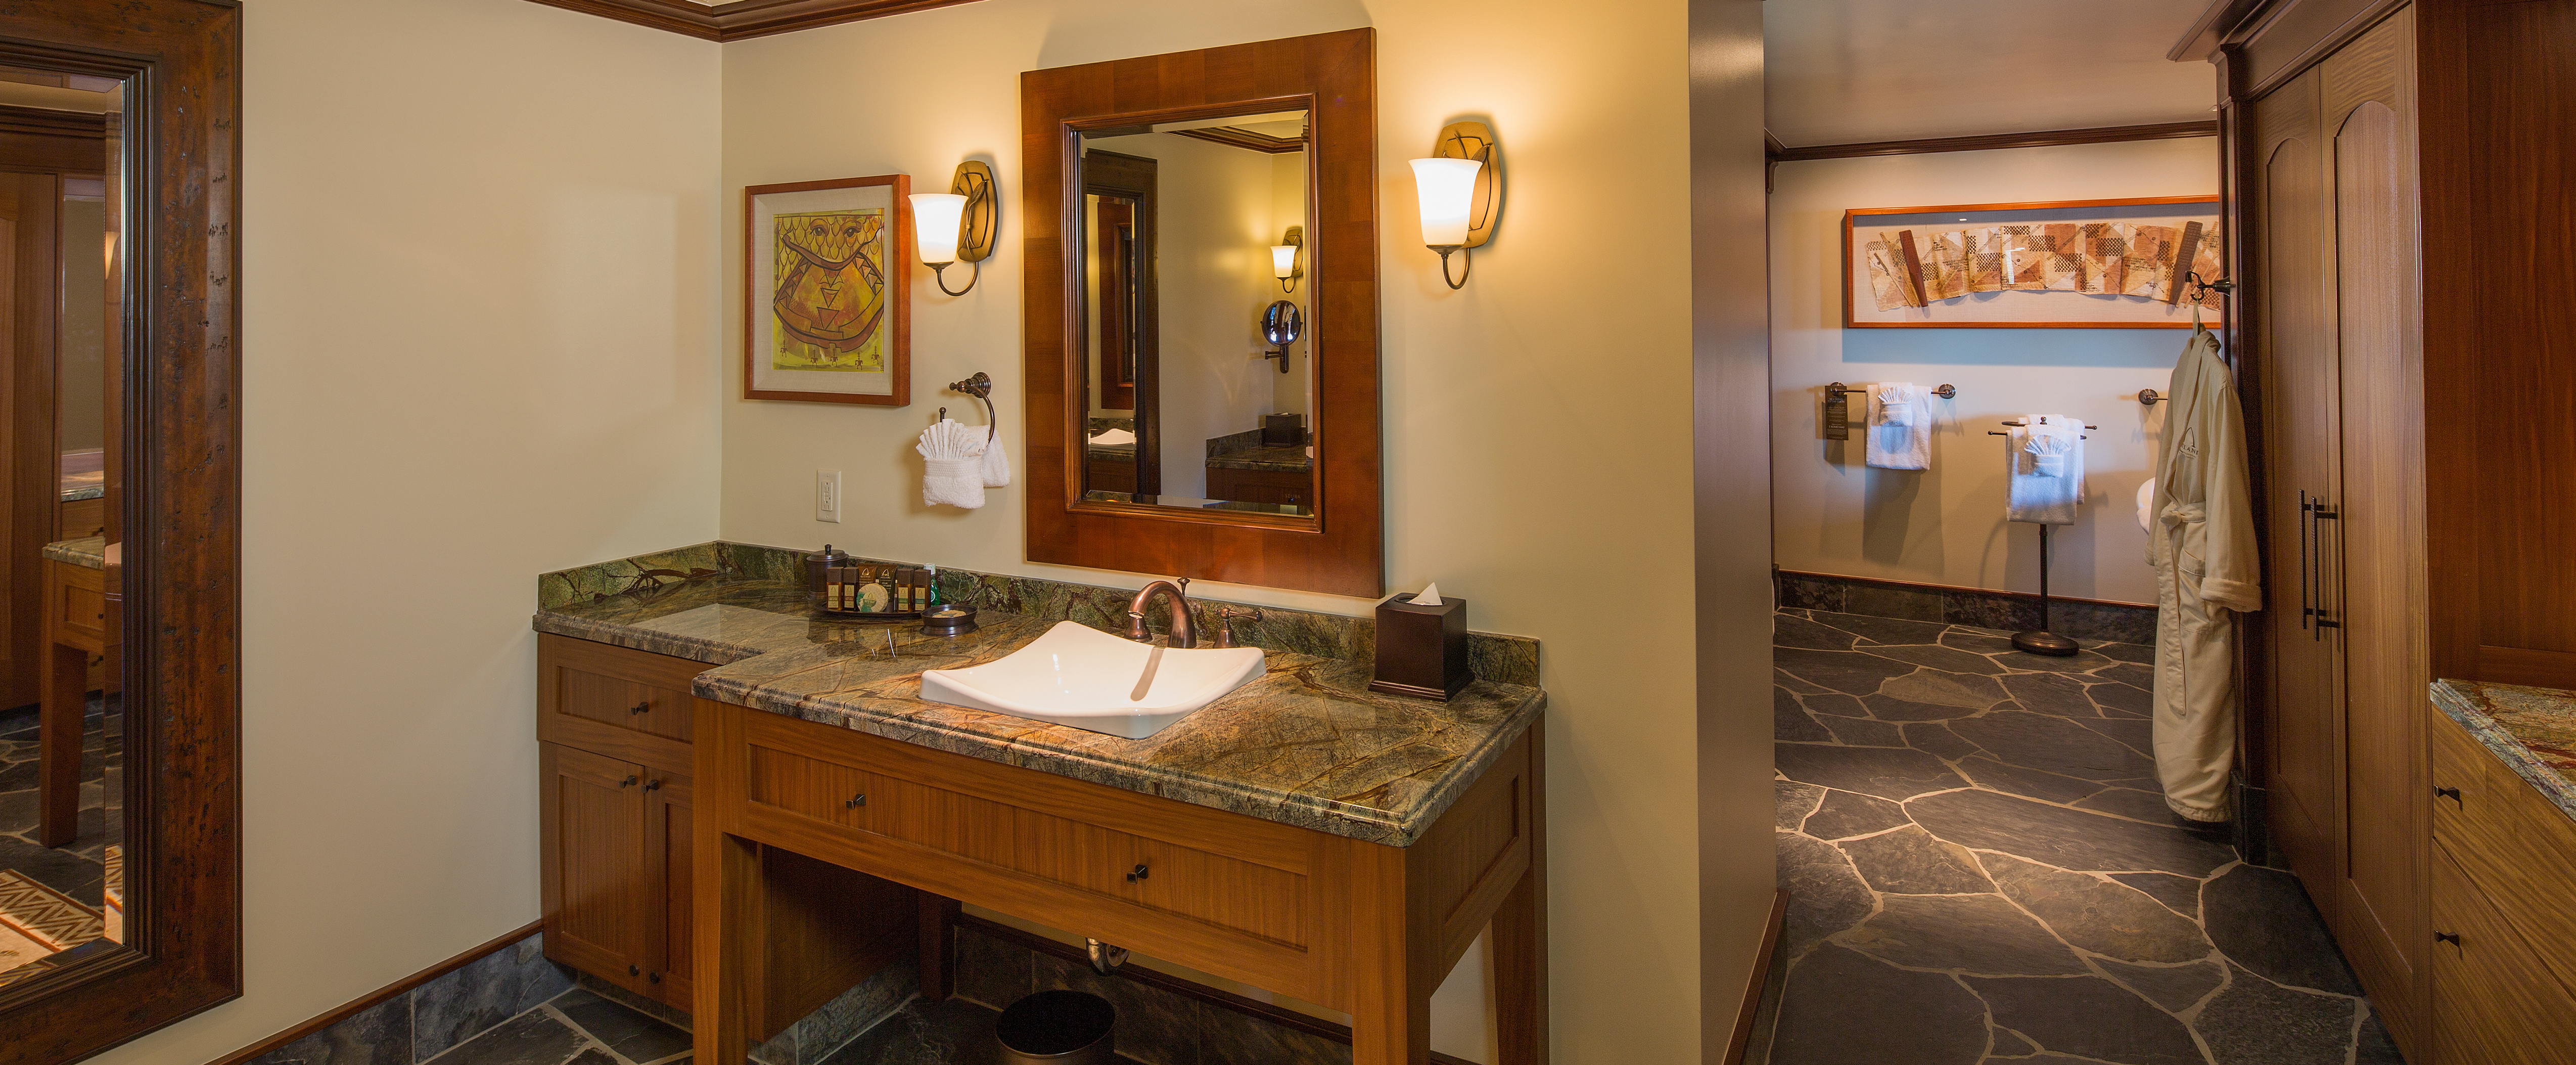 Ahu Ula Suite This Spacious Suite Features 3 Full